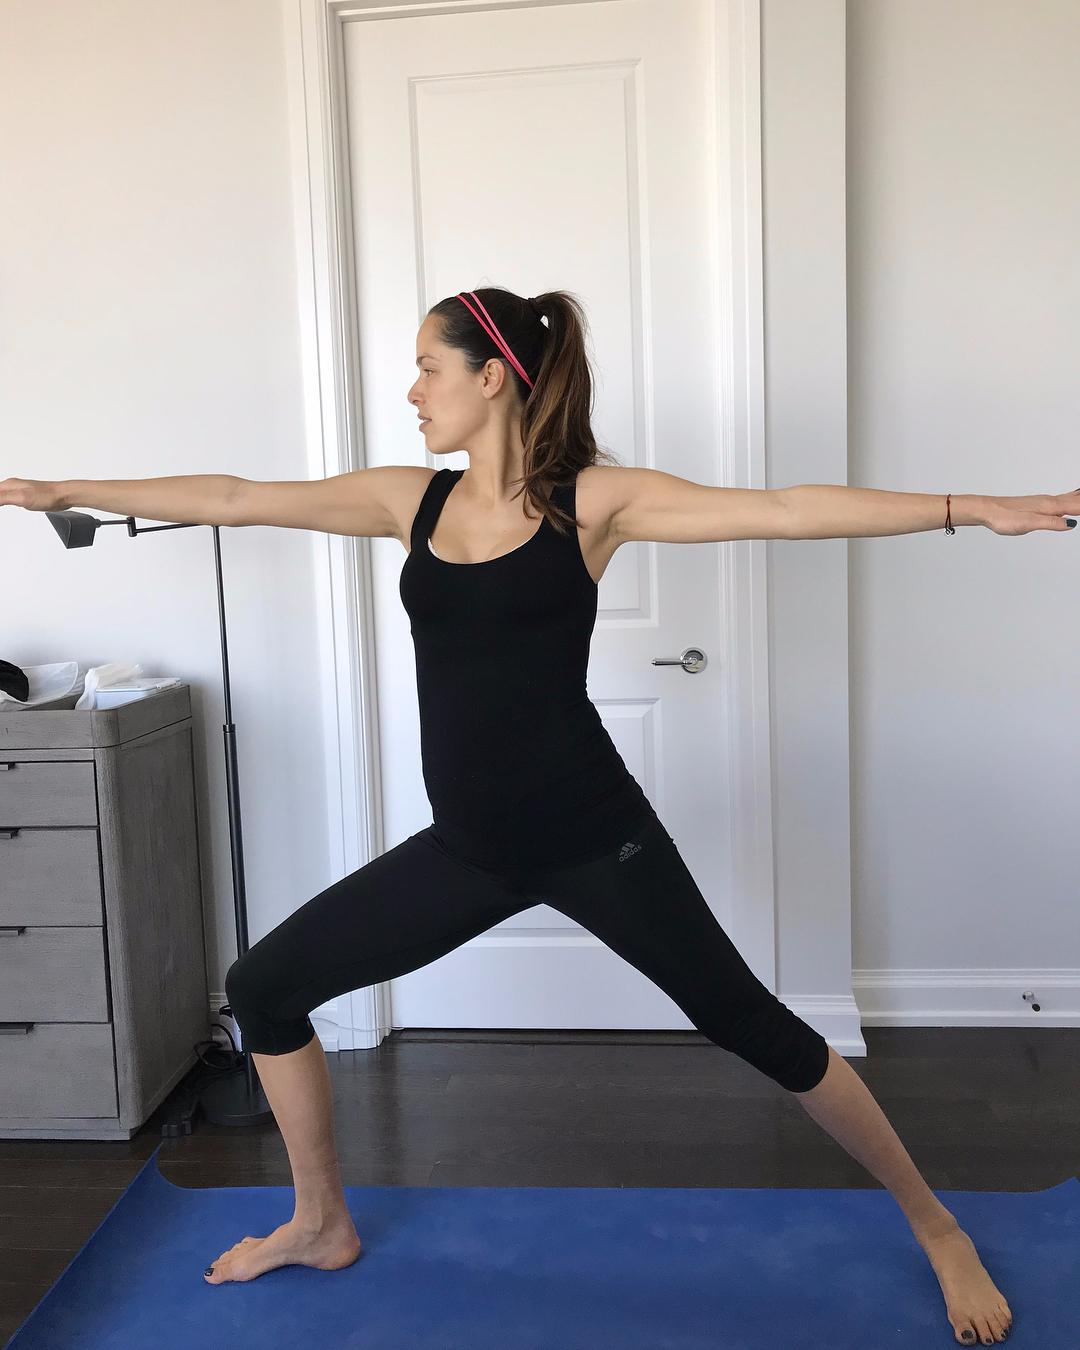 Ivanovic looks fighting fit as she works out on a yoga mat